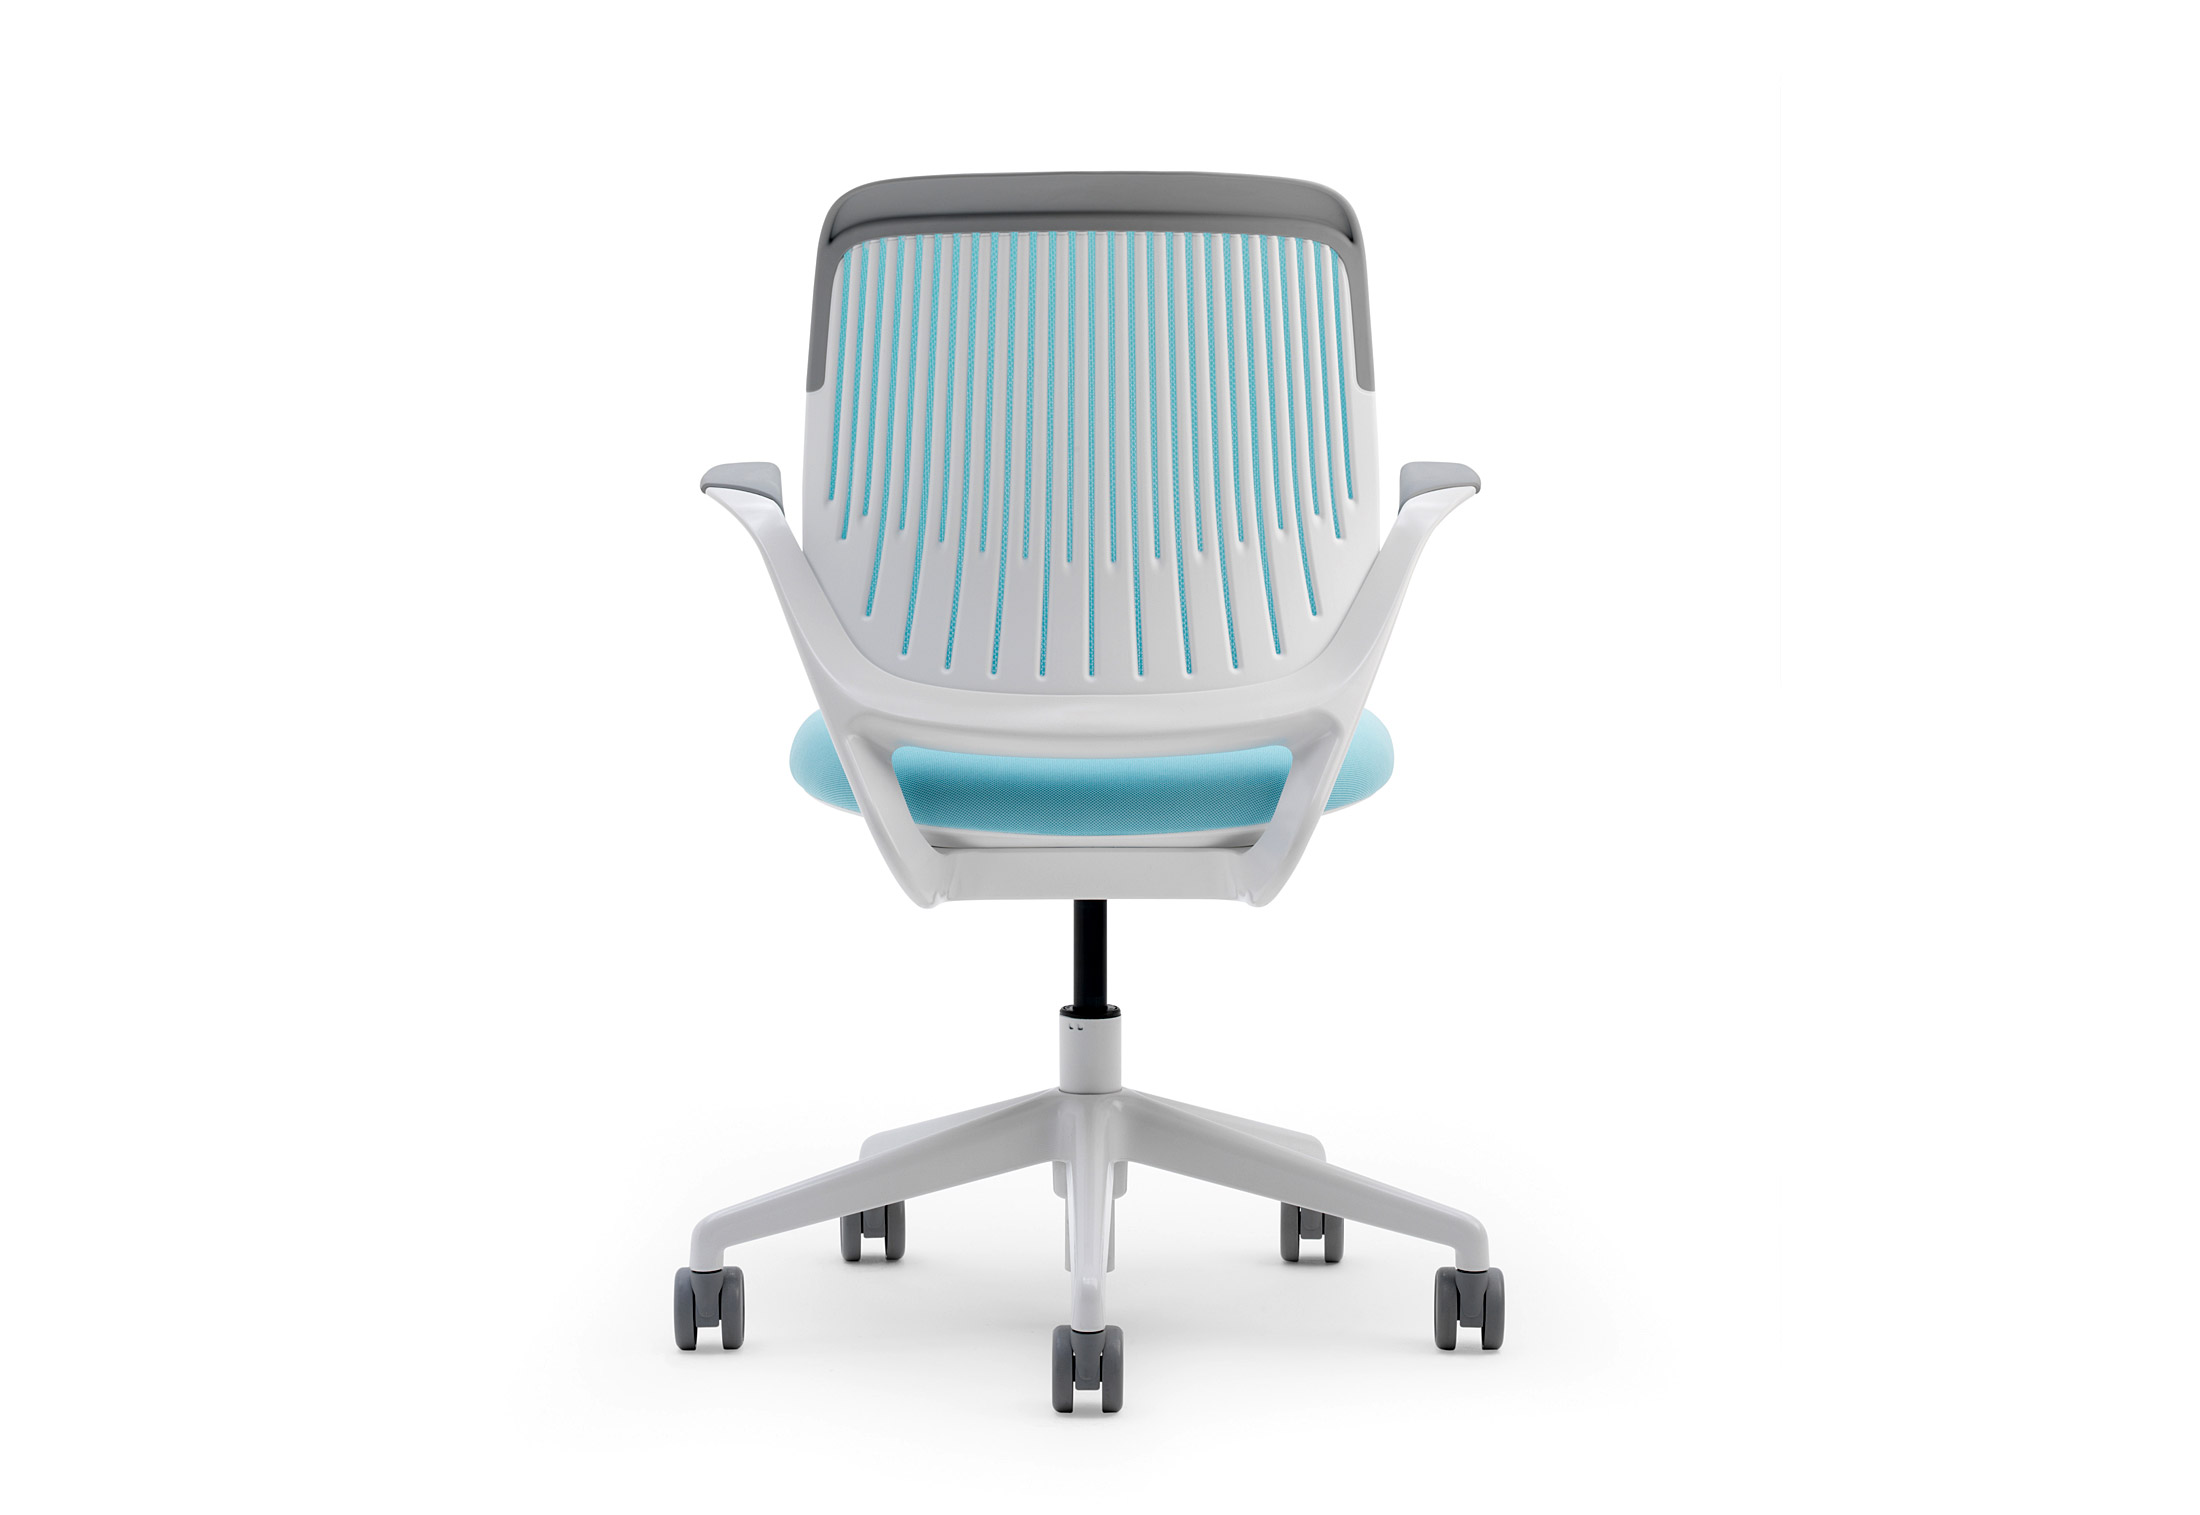 cobi by Steelcase